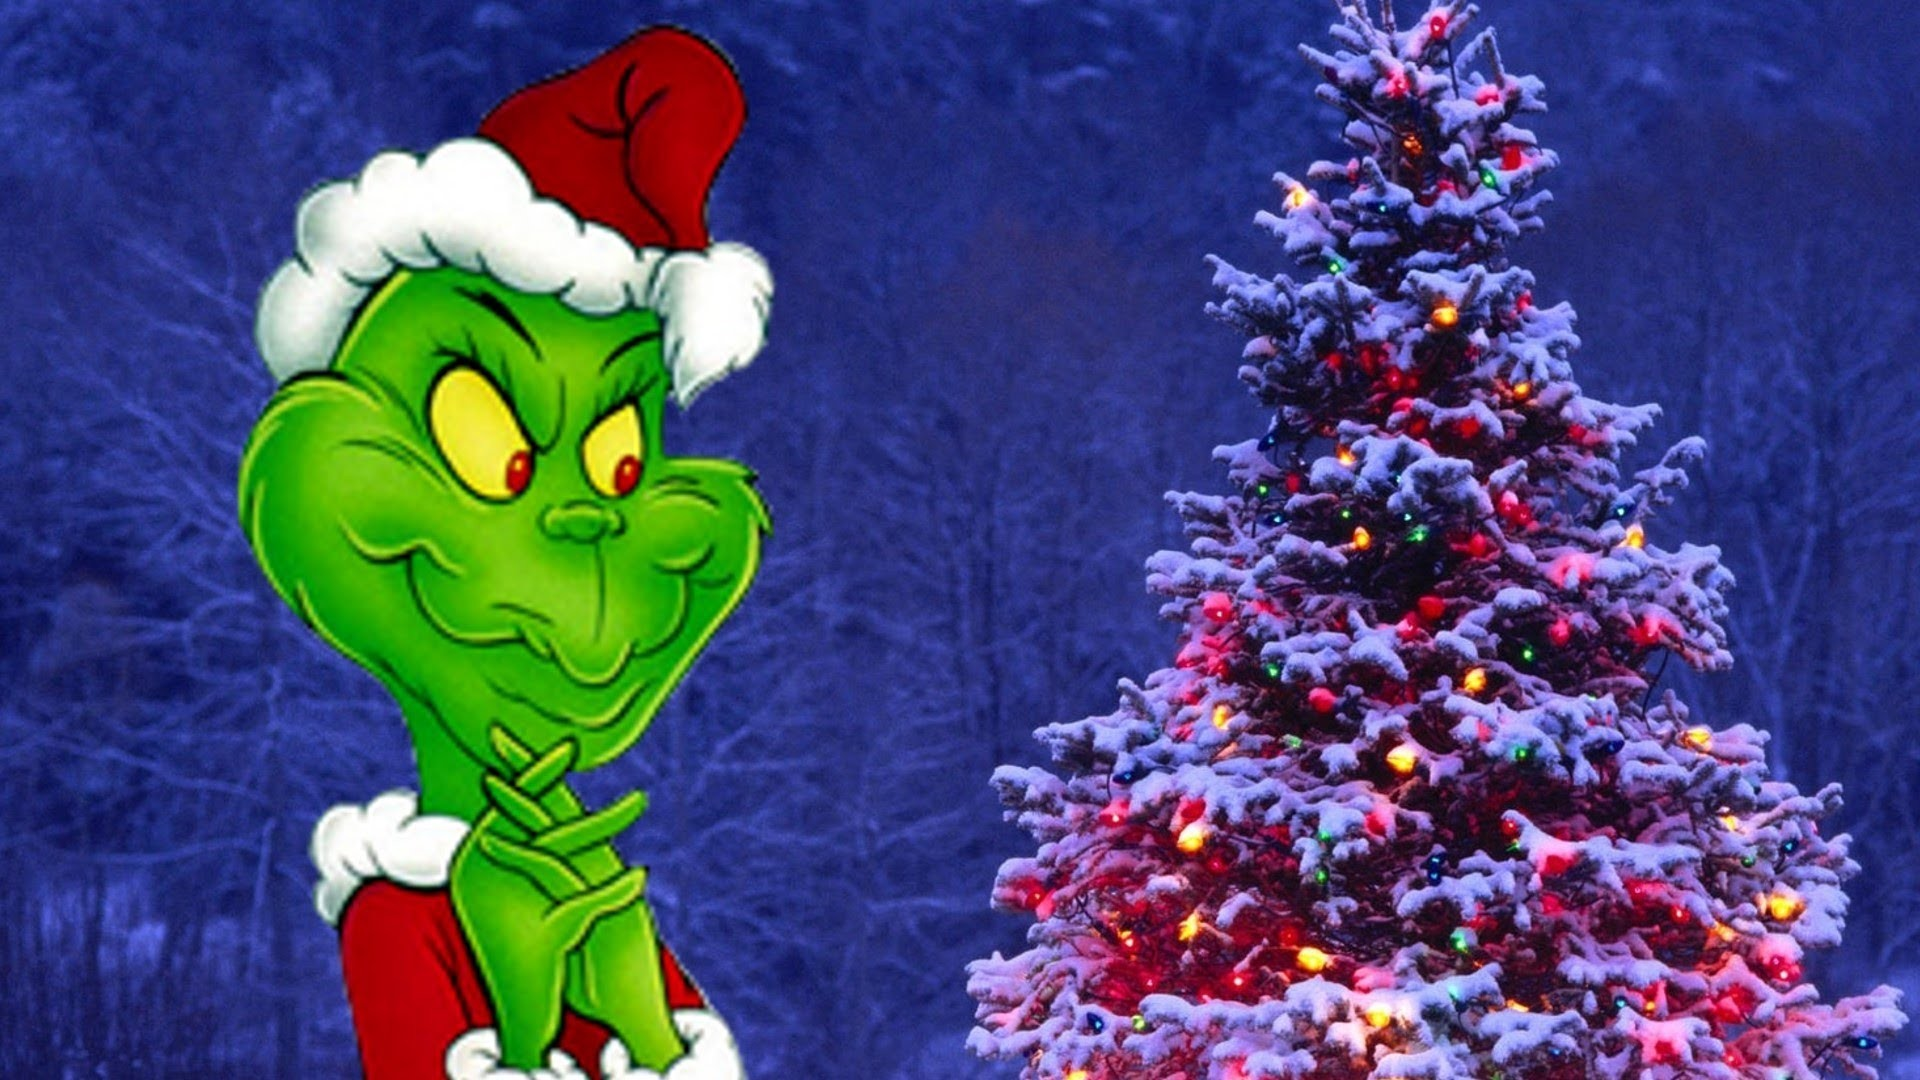 Grinch Wallpaper Pictures 68 images 1920x1080